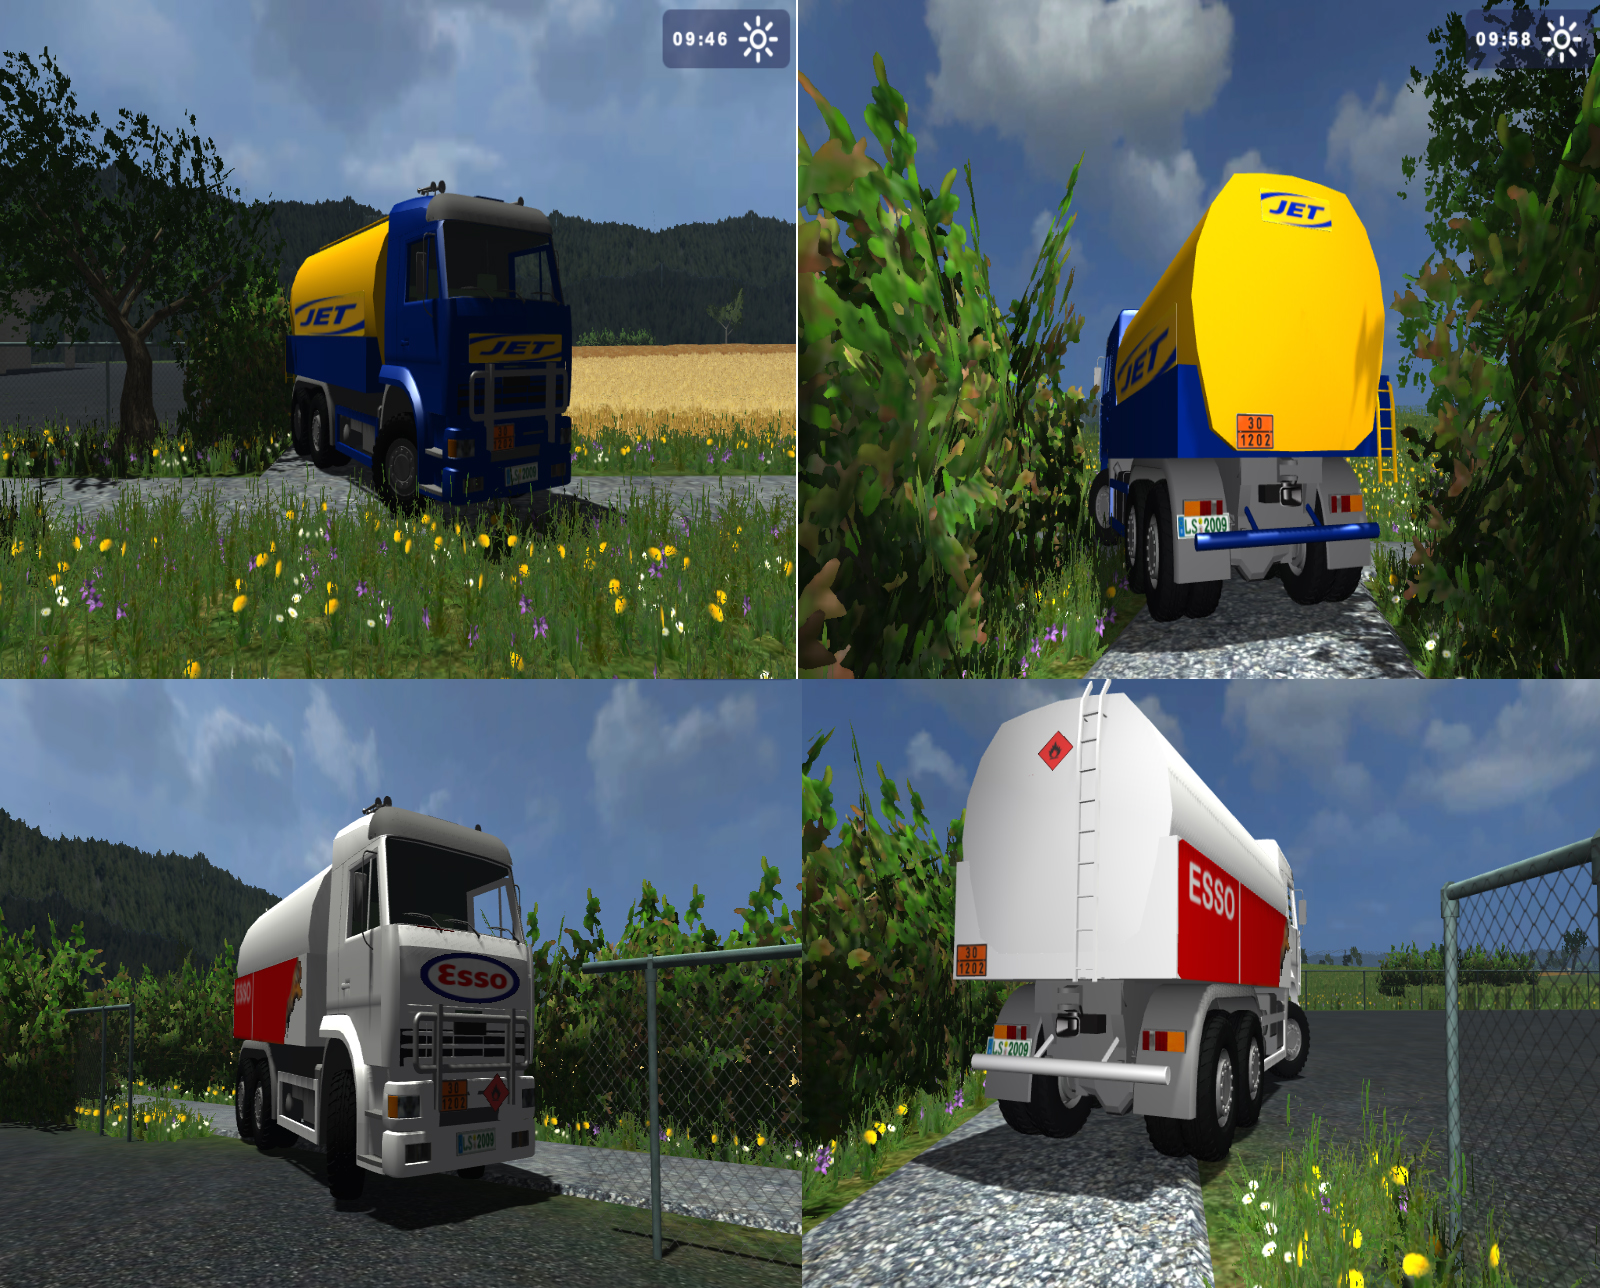 Tank Kamaz 6520 ESSO and JET Pack